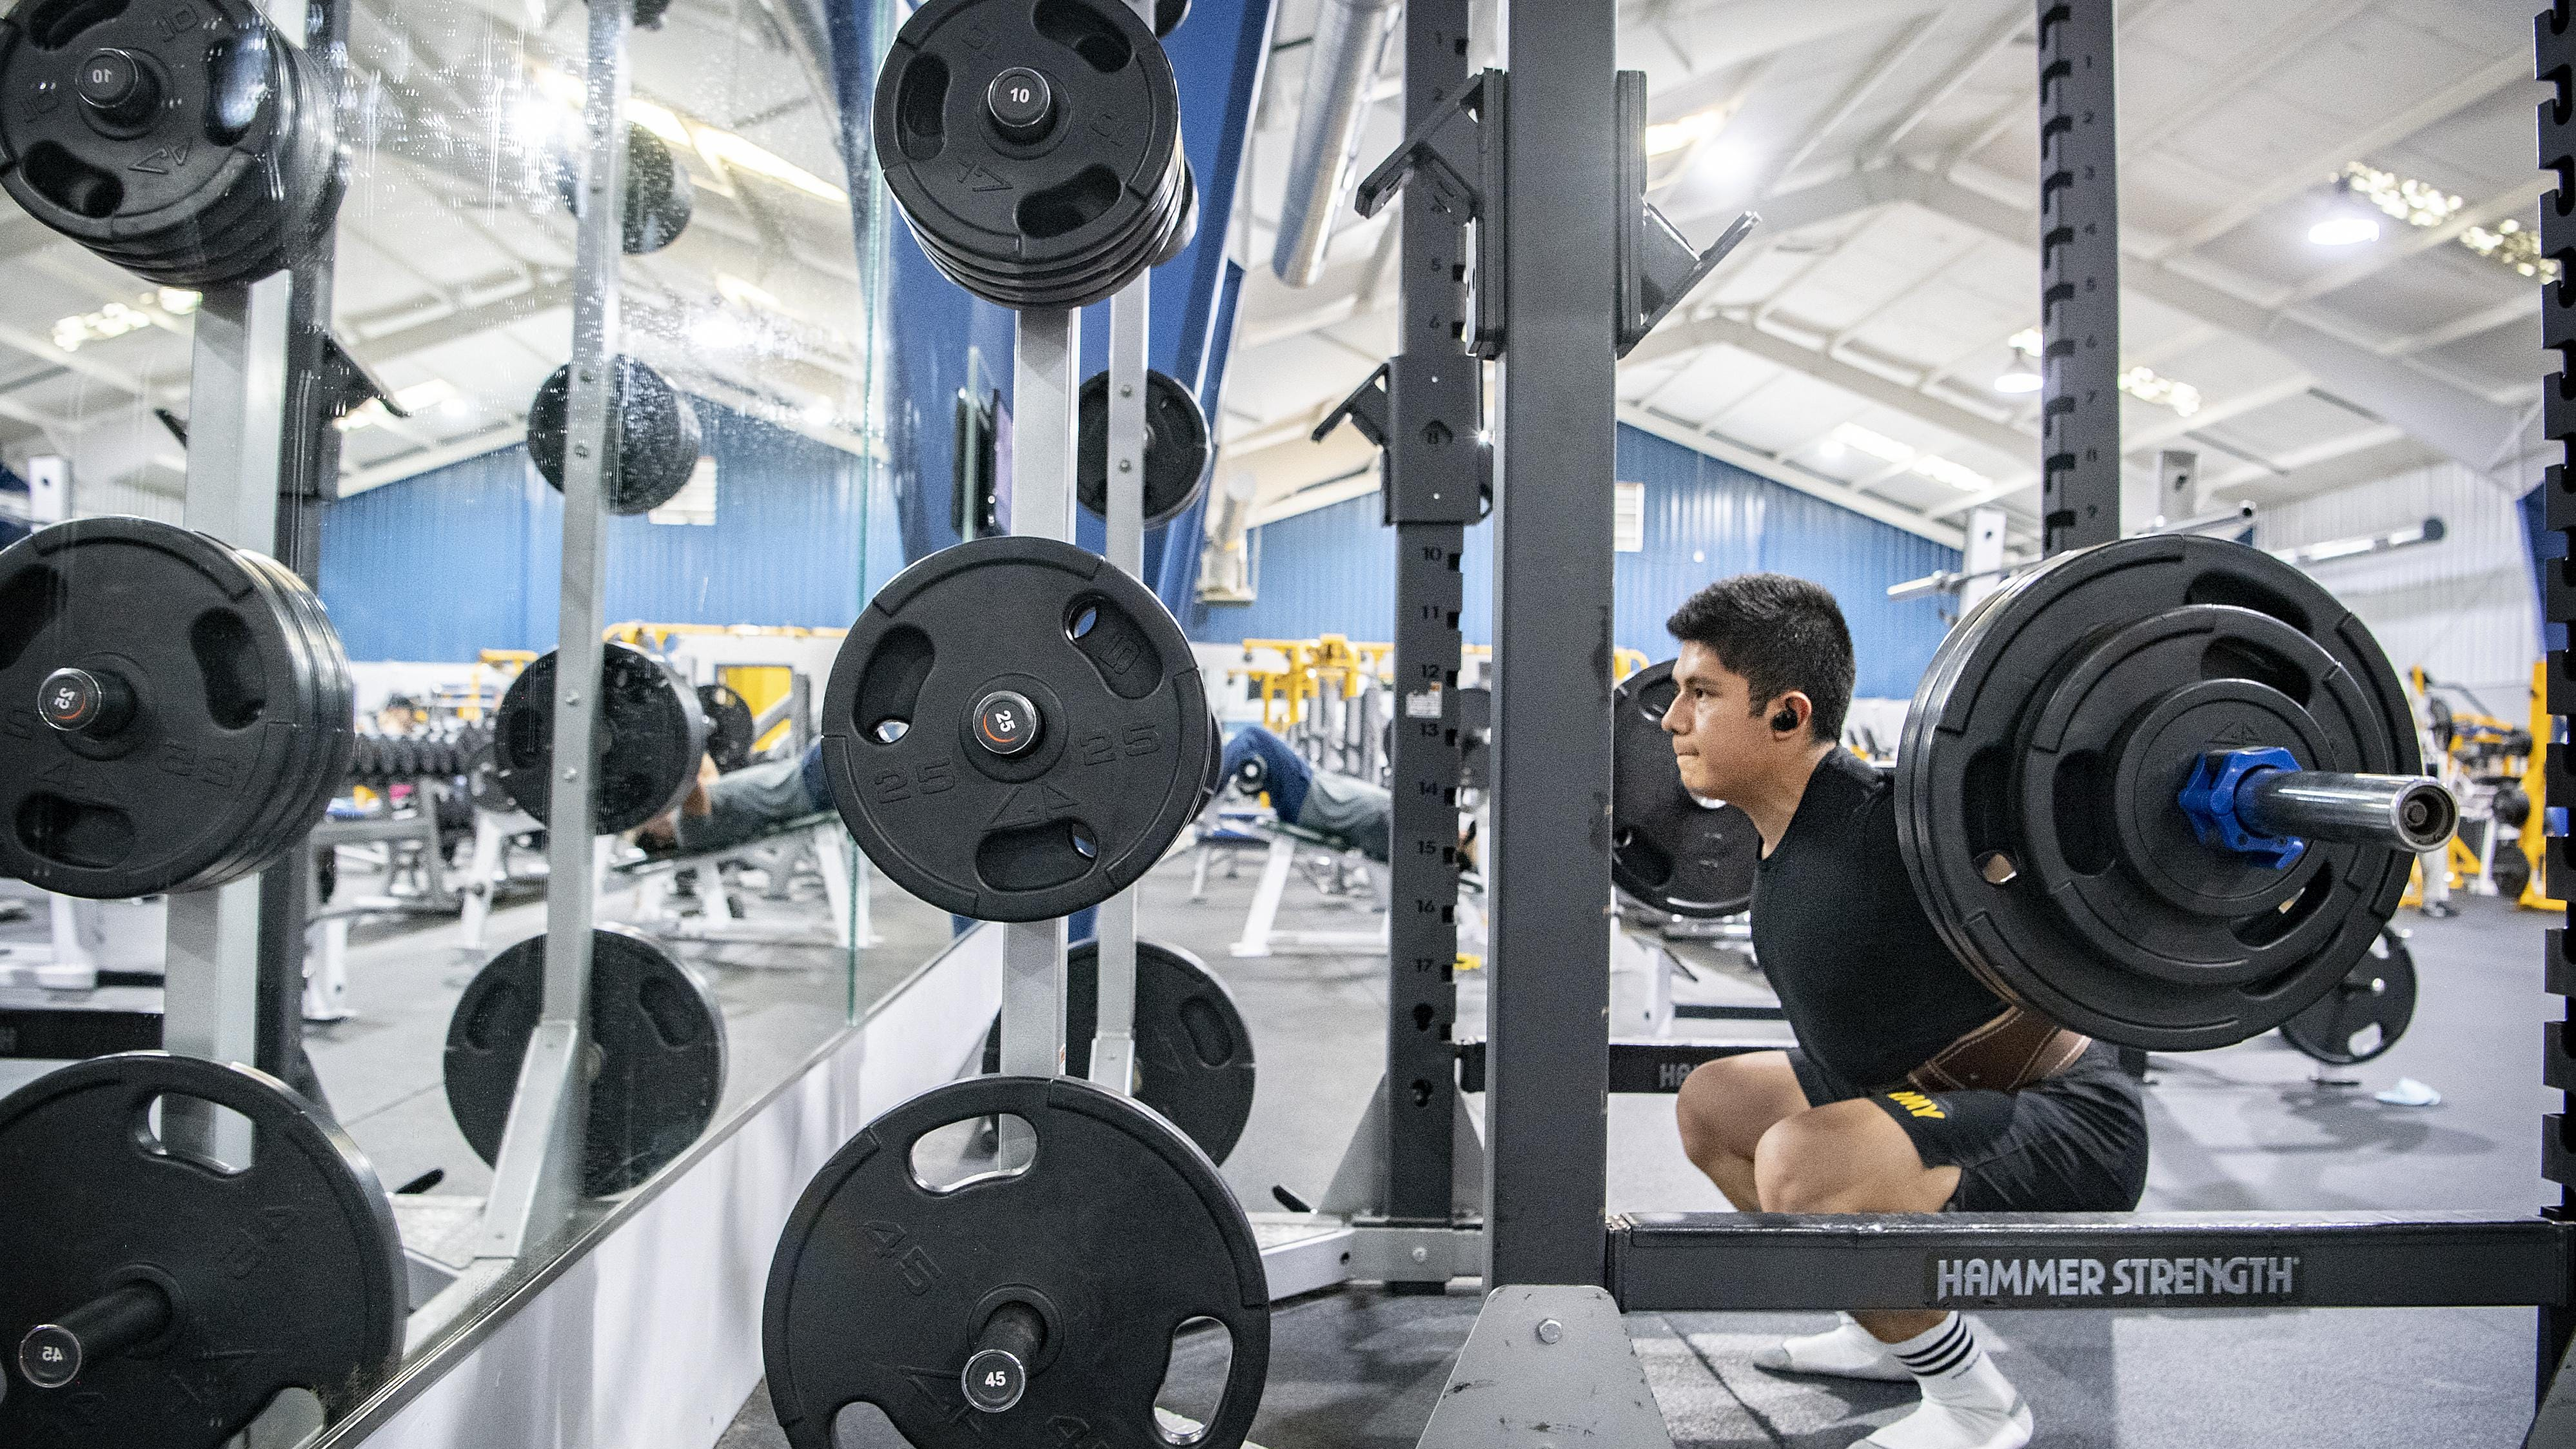 Gyms Reopen In Hendersonville Asheville Pointing To State Covid Guidance Loophole